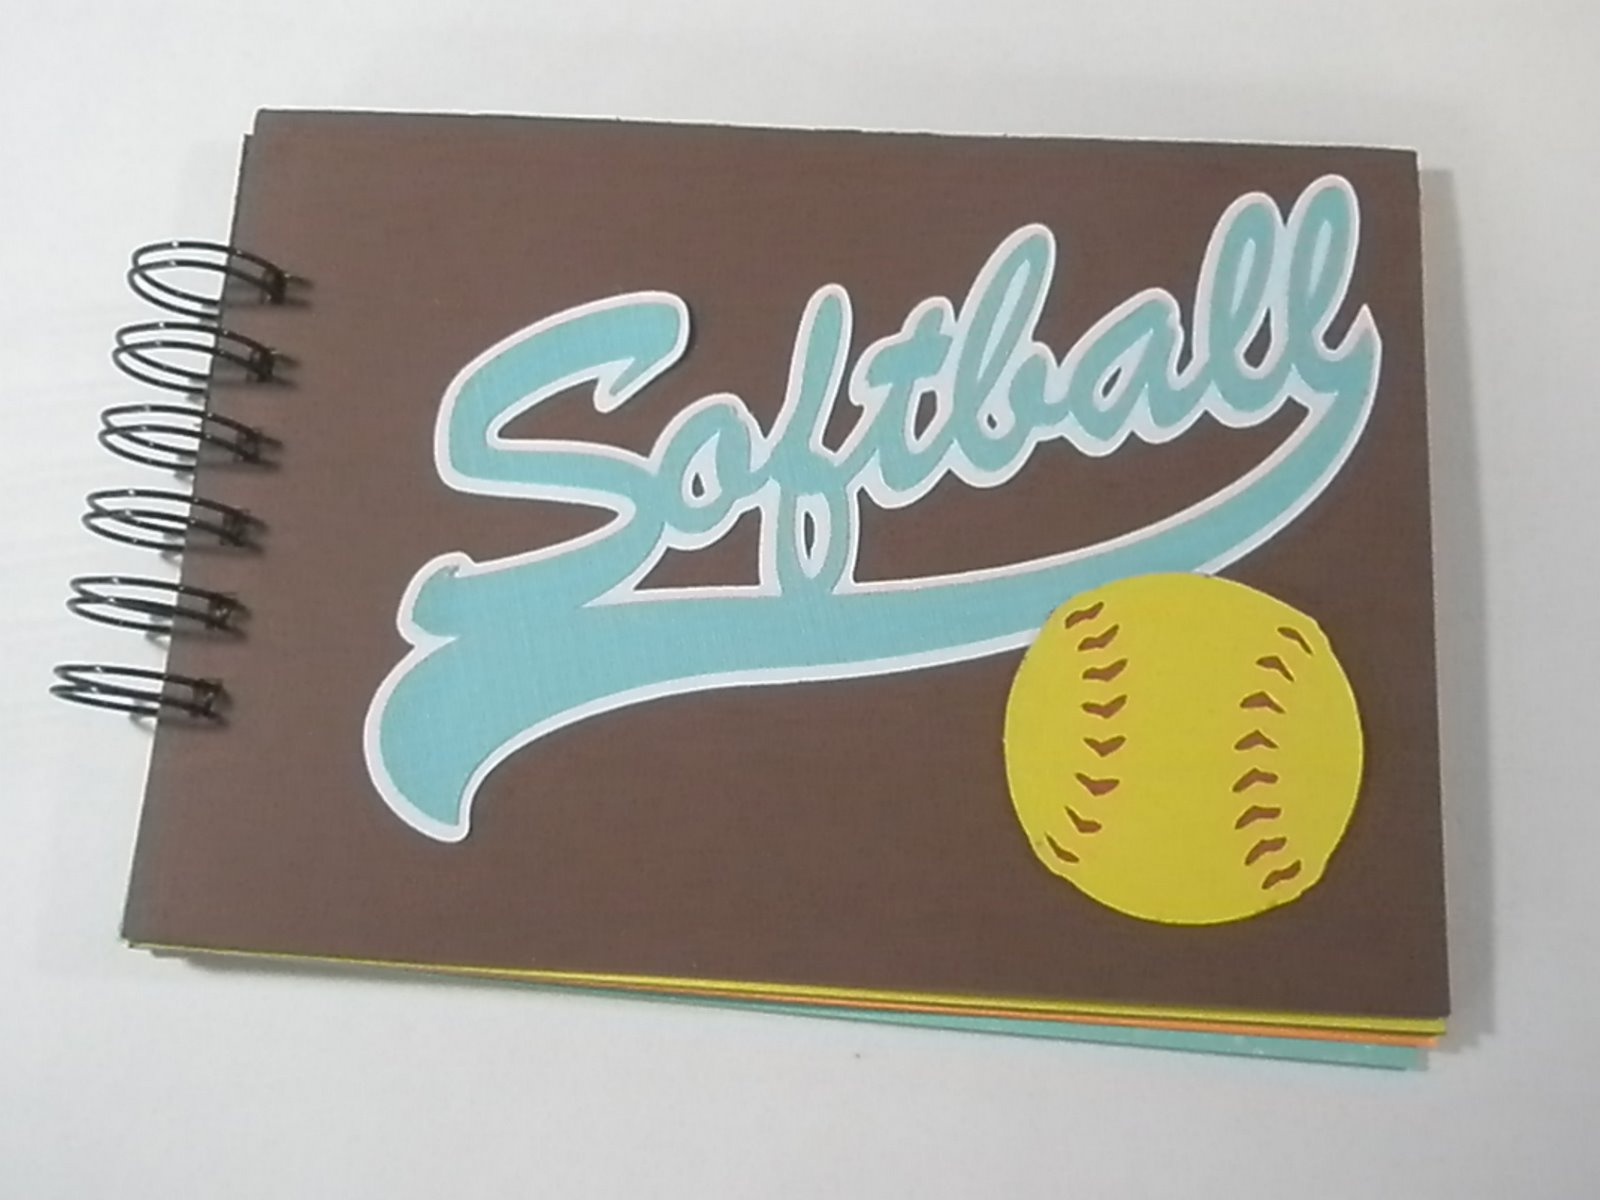 [Softball+cover]